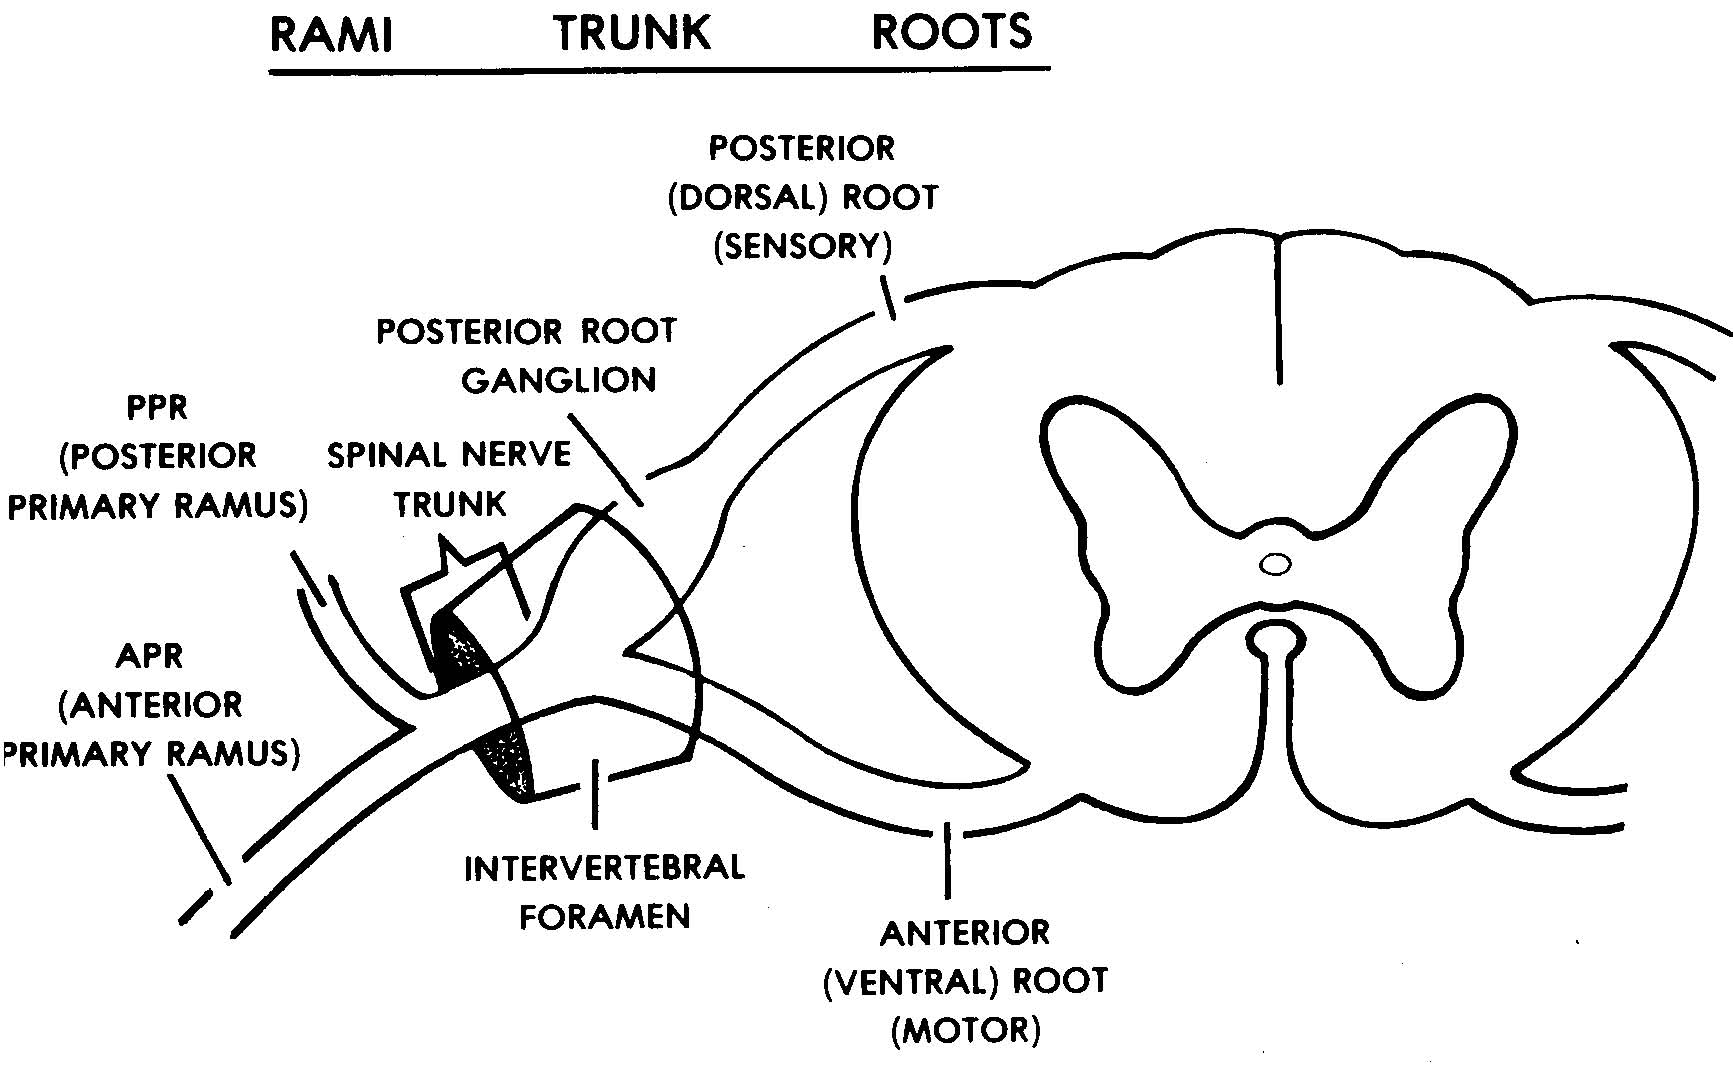 2-7. THE SPINAL NERVES